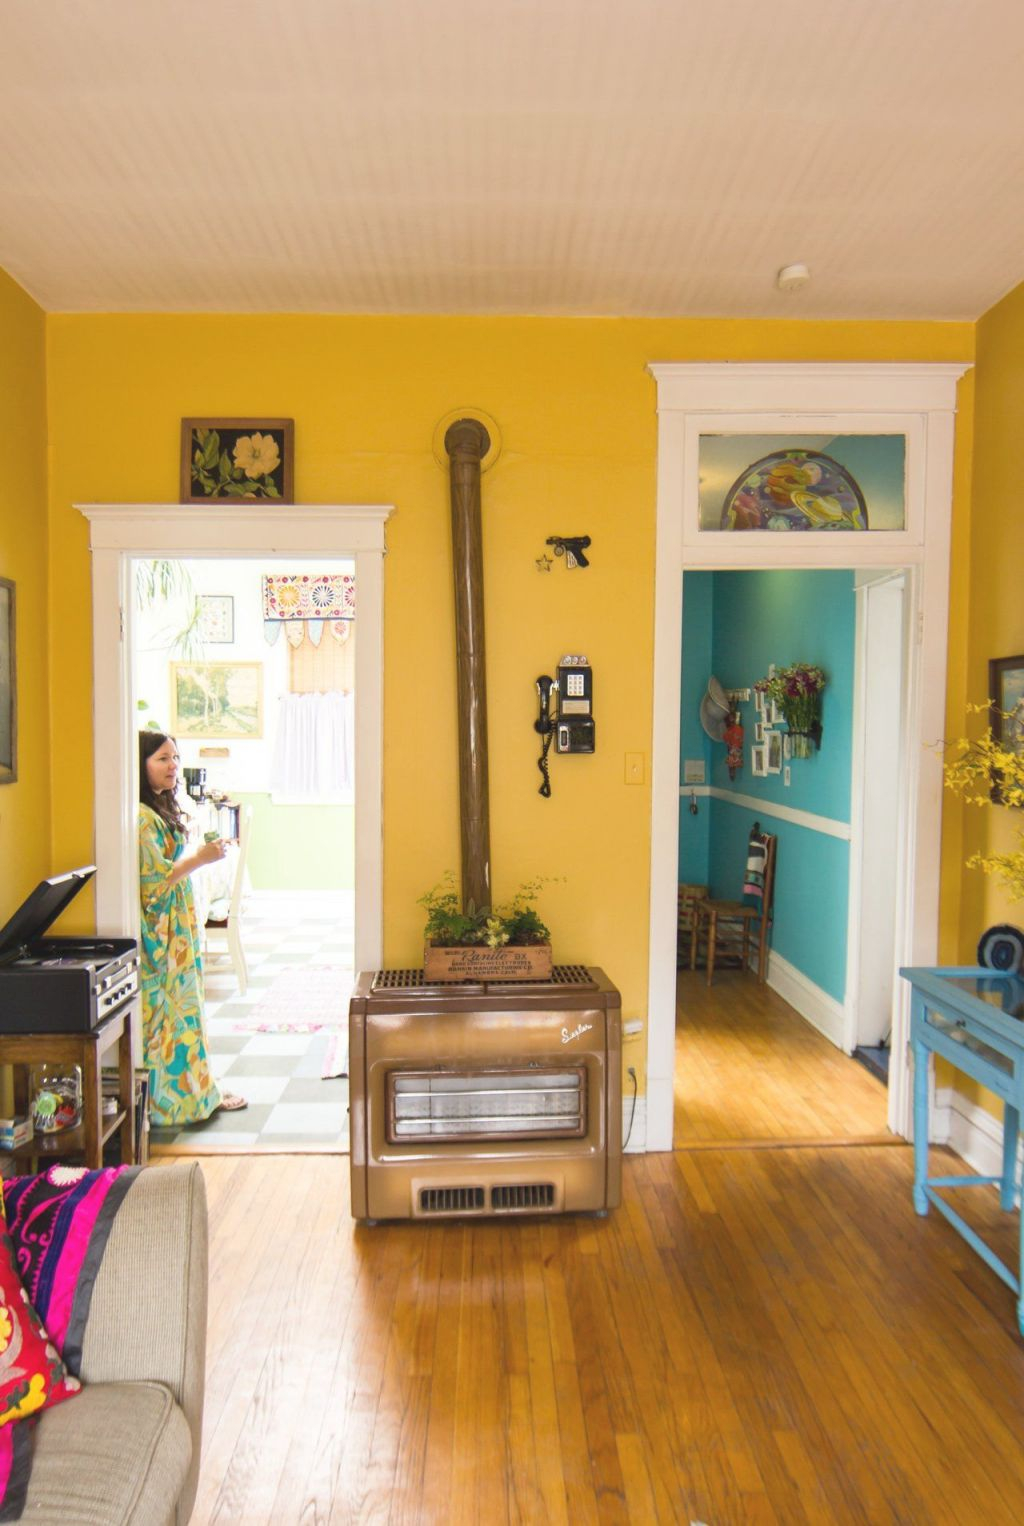 Amy's Vintage Jewel Tone Apartment In 2019 | Yellow Walls inside Unique Yellow Walls Living Room Interior Decor